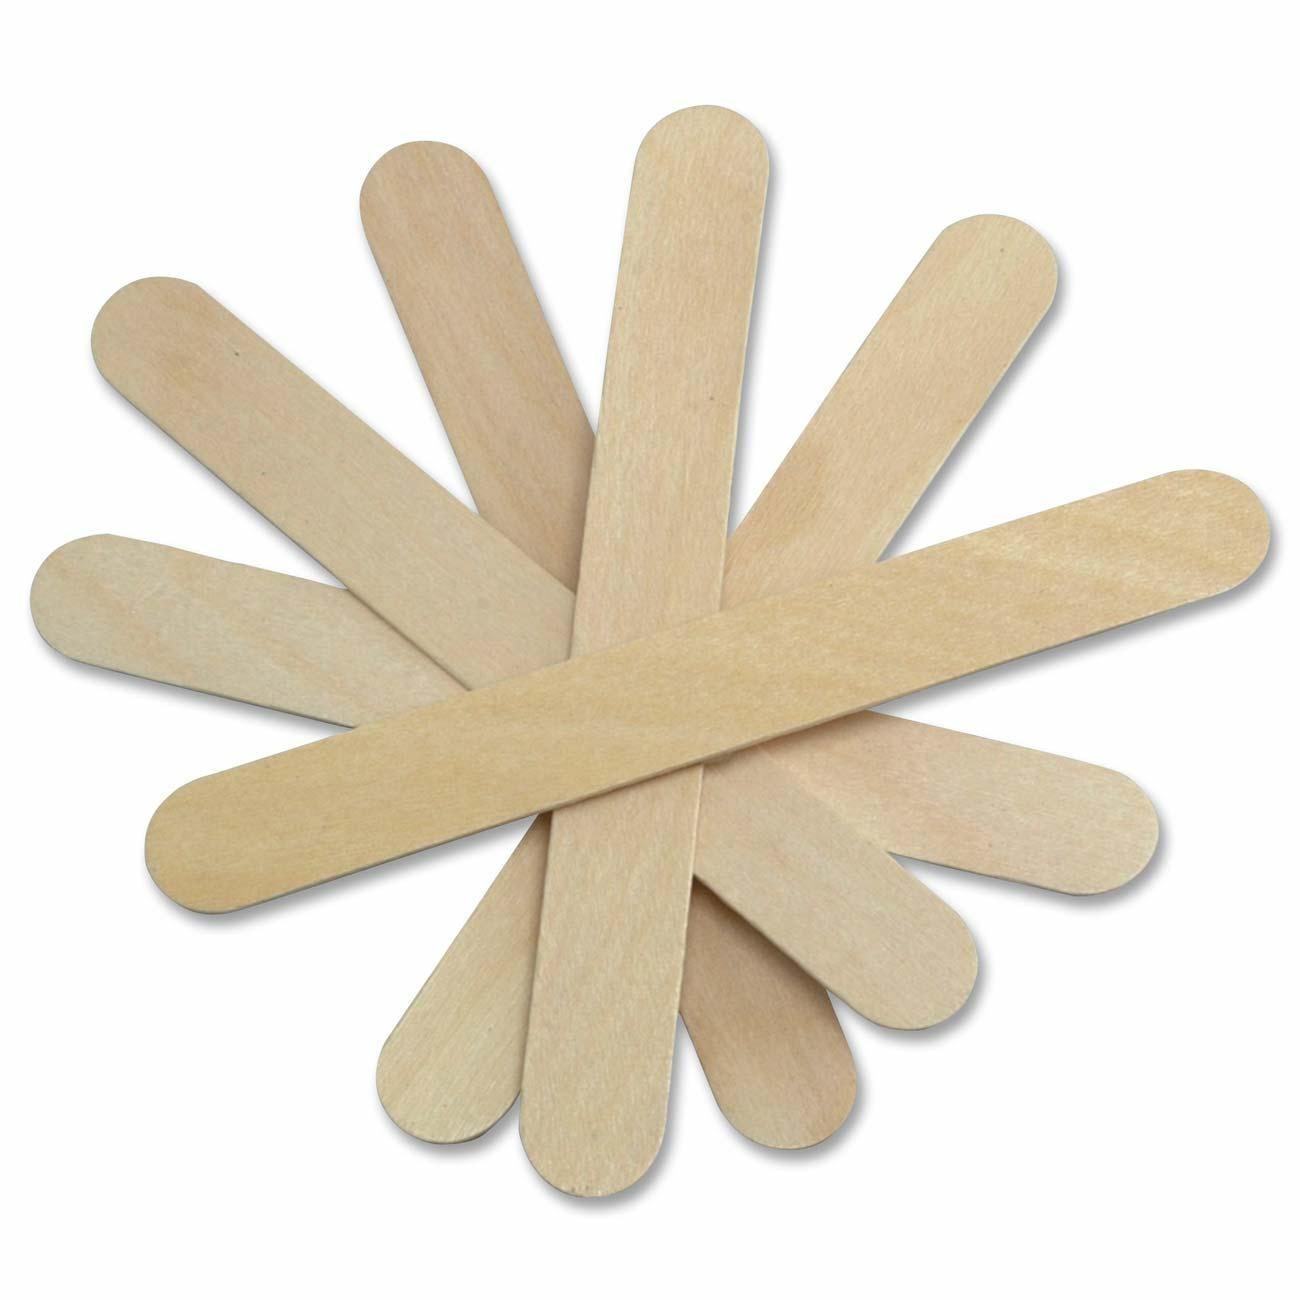 100 High Quality Wooden Tongue Depressor, Waxing Spatula